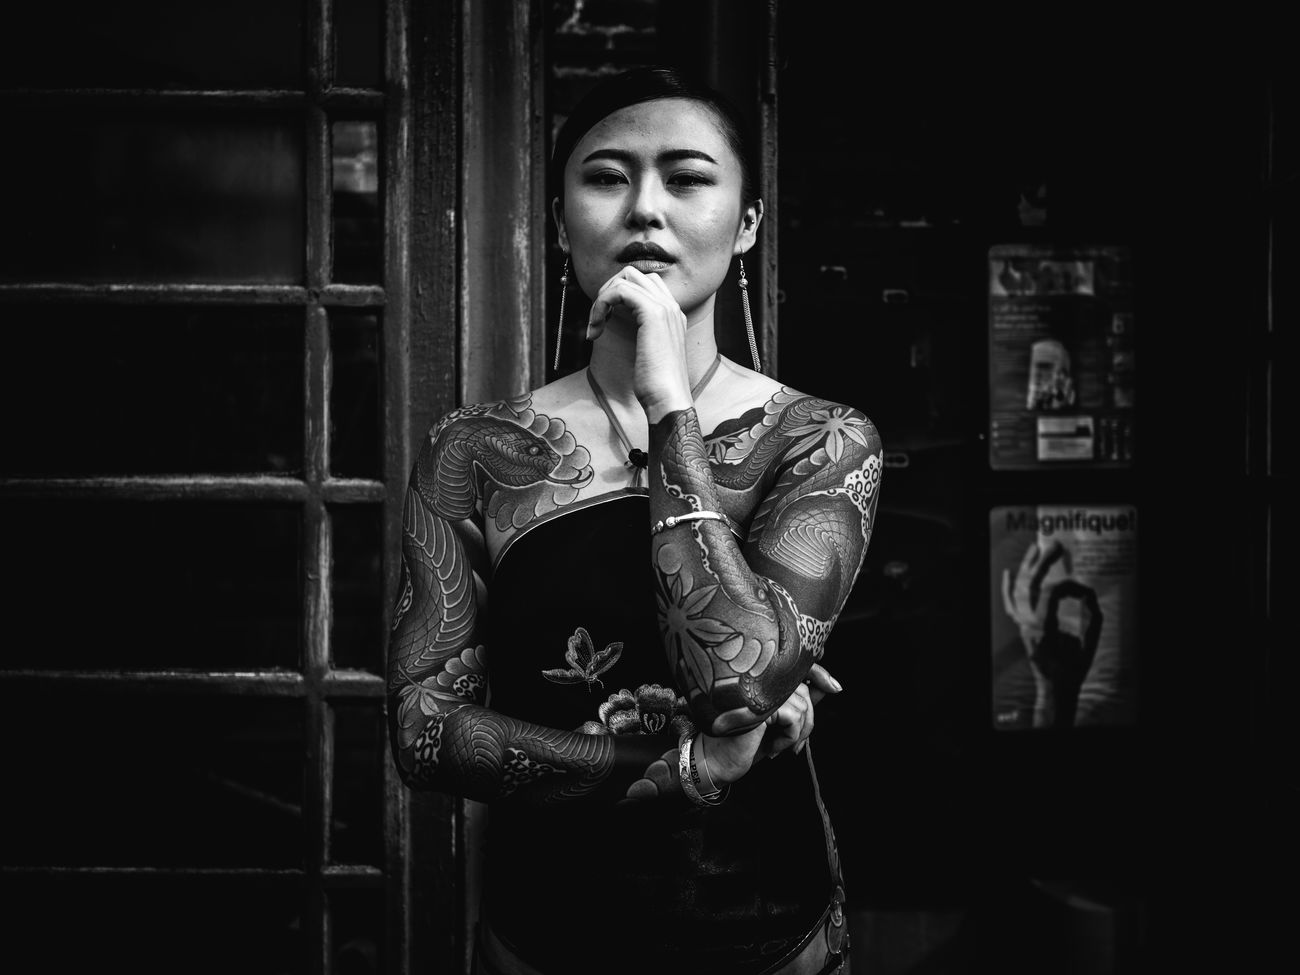 Girl with the Dragon Tattoo Rawstreets Streetlife Black And White Photography Street Portraiture Stranger Cıty Maxgor London Olympus Pen-f Lifestyles 35mmStreet Photography Maxgor.com City Candid London Lifestyle Prime Lens Portrait LTC London Tattoo Tattoo Women The Week On EyeEm Art Is Everywhere The Portraitist - 2017 EyeEm Awards